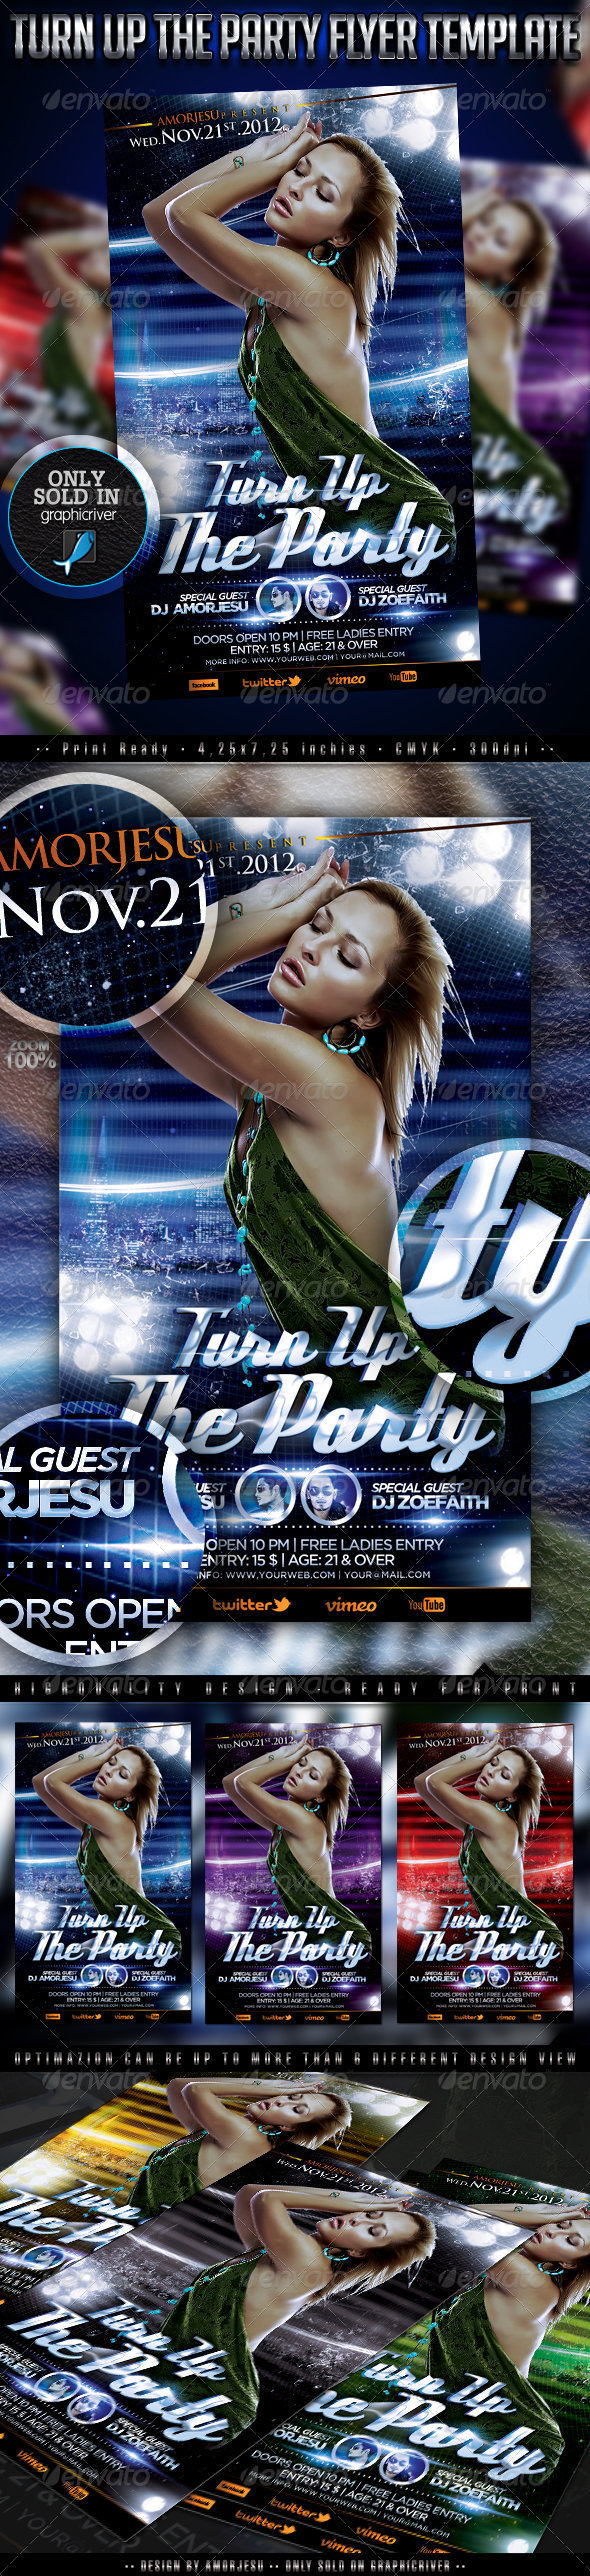 Turn Up The Party Flyer Template - Events Flyers